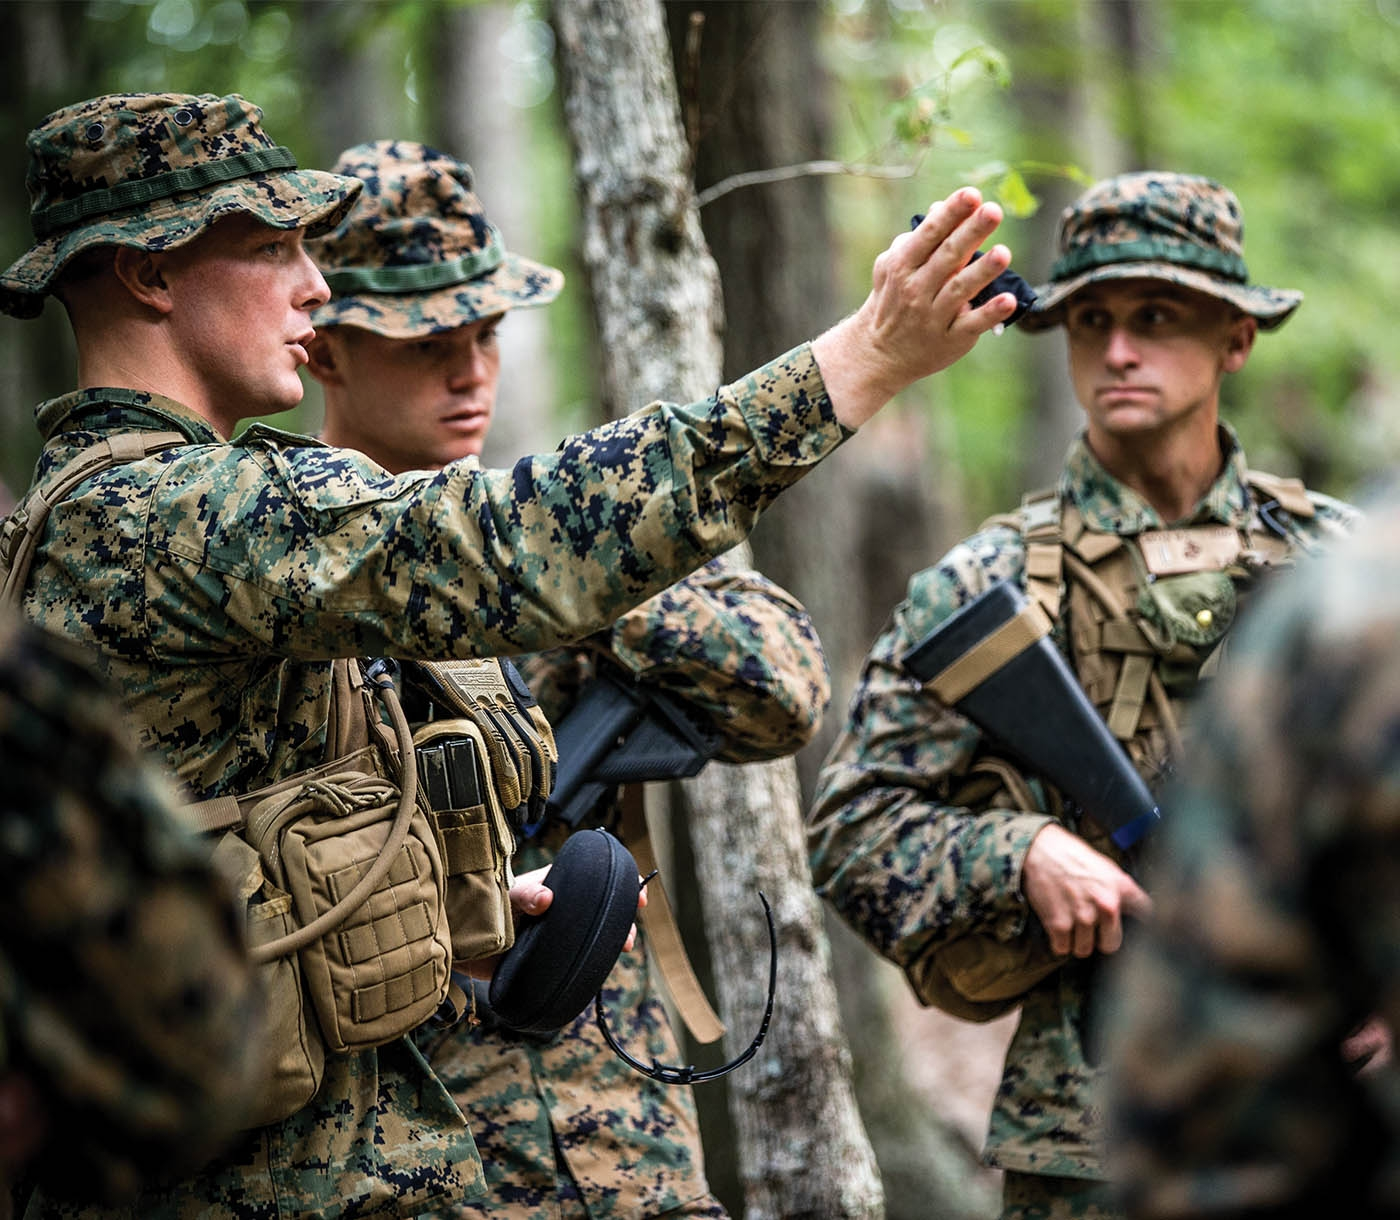 A Marine Officer gestures to other Marines to show direction.